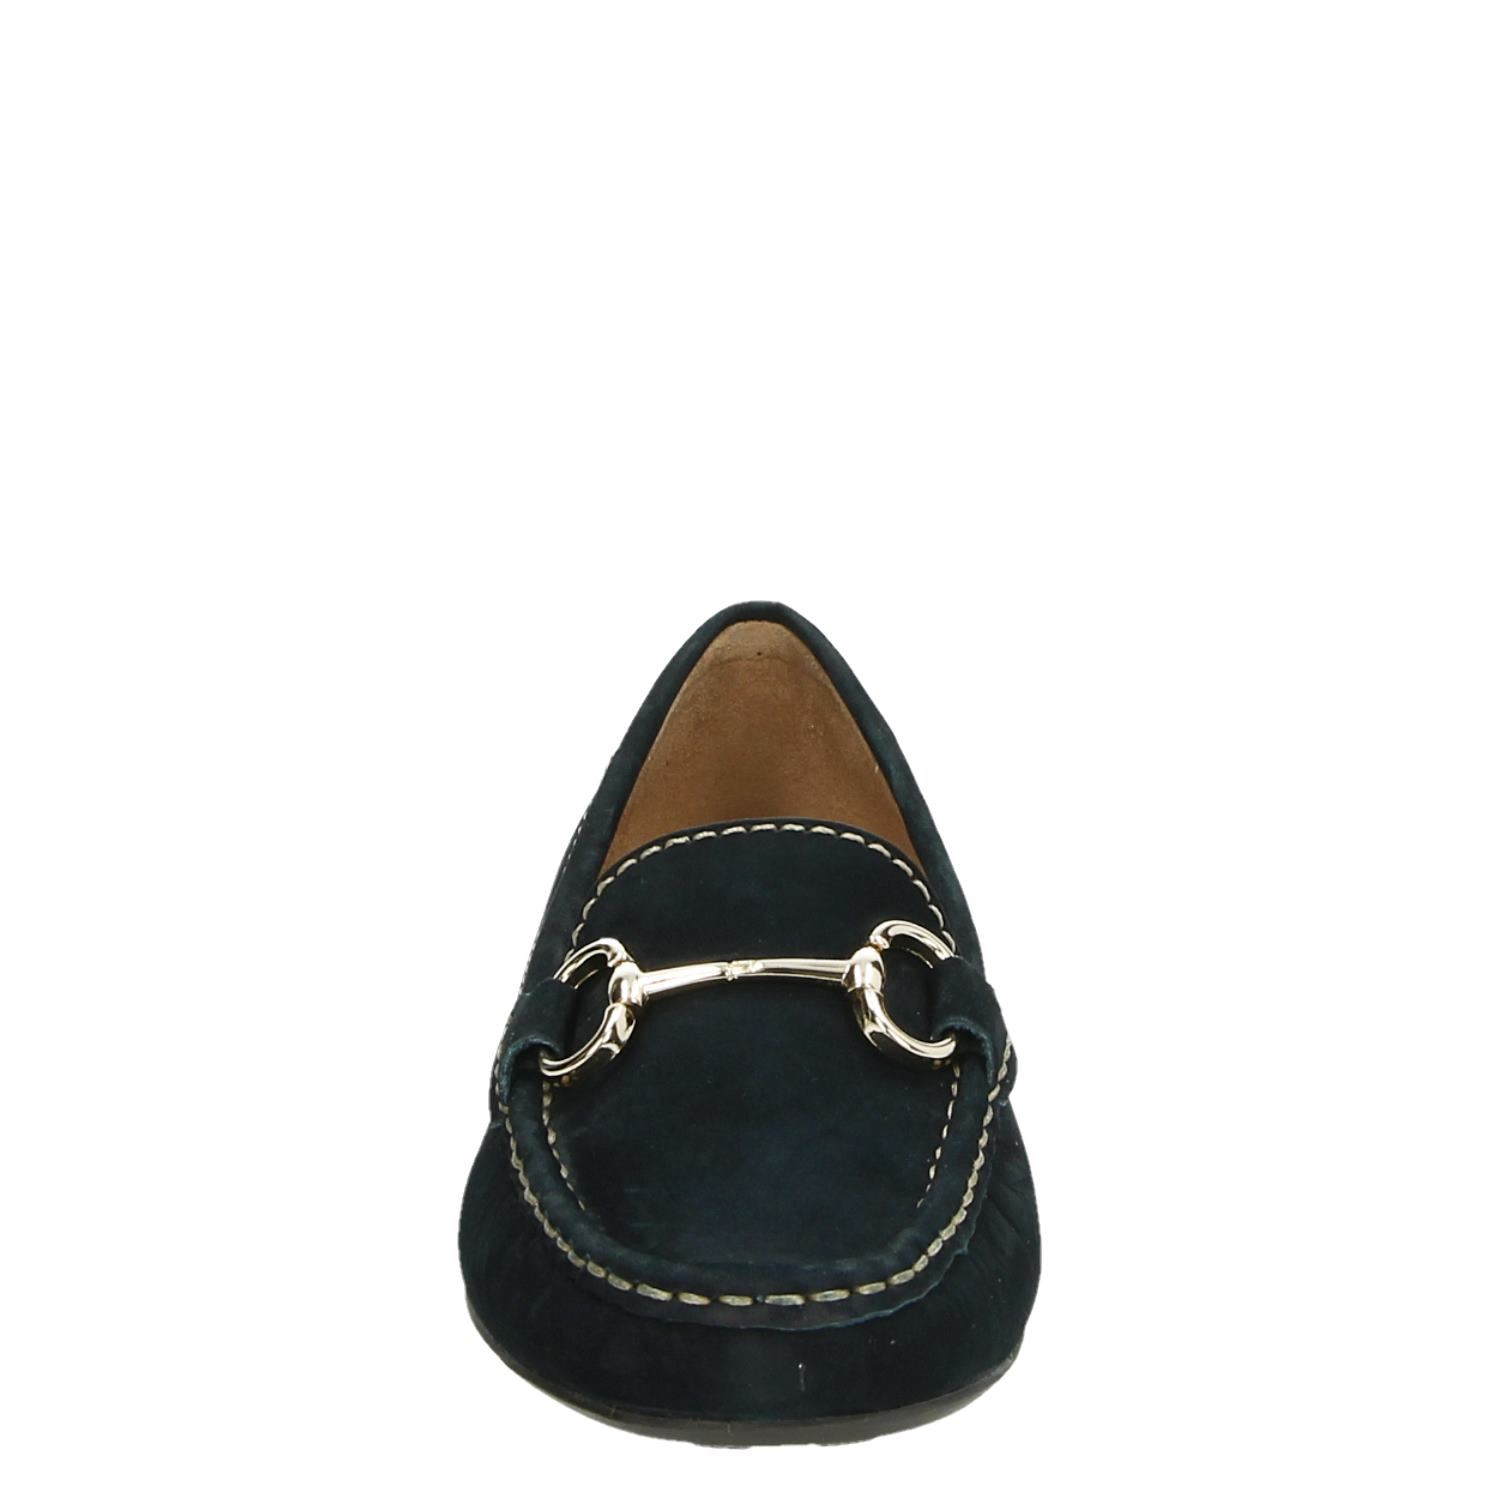 Nelson - Mocassins & loafers voor dames - Blauw bj2i8AS